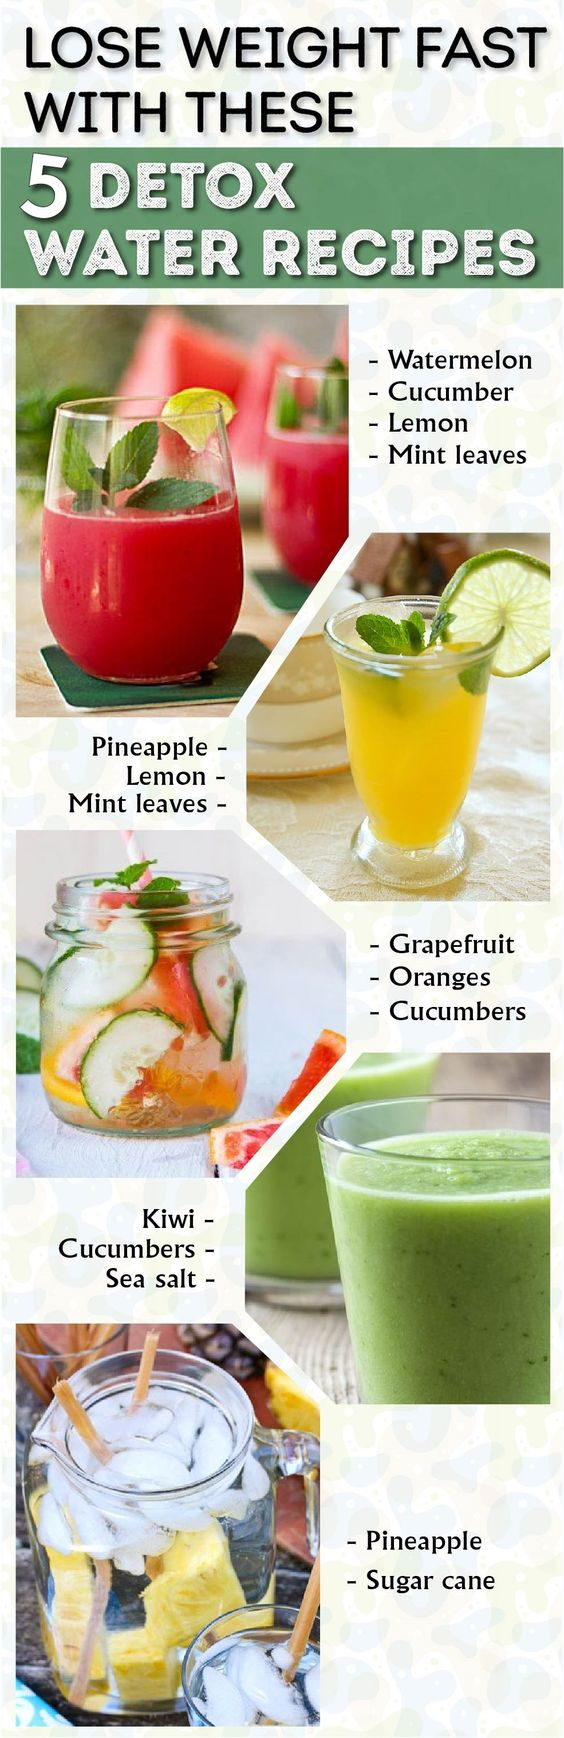 Lose Weight Fast With These 5 Detox Water Recipes